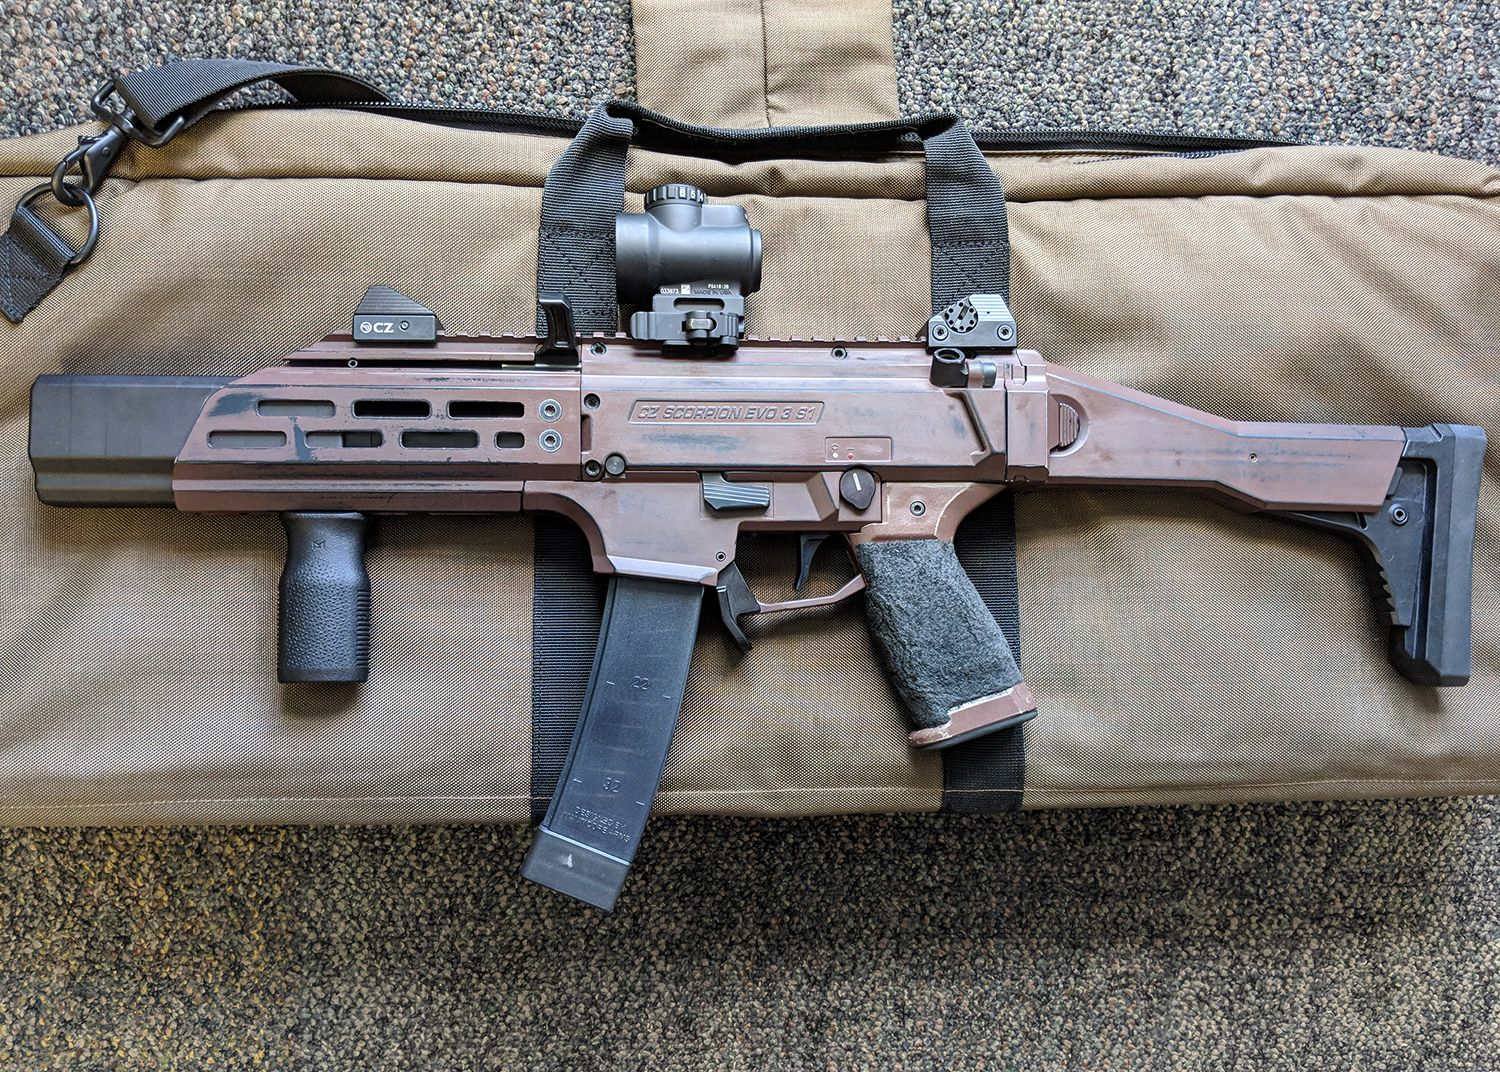 IA-SC9- Integral CZ Scorpion - Innovative Arms Silencers